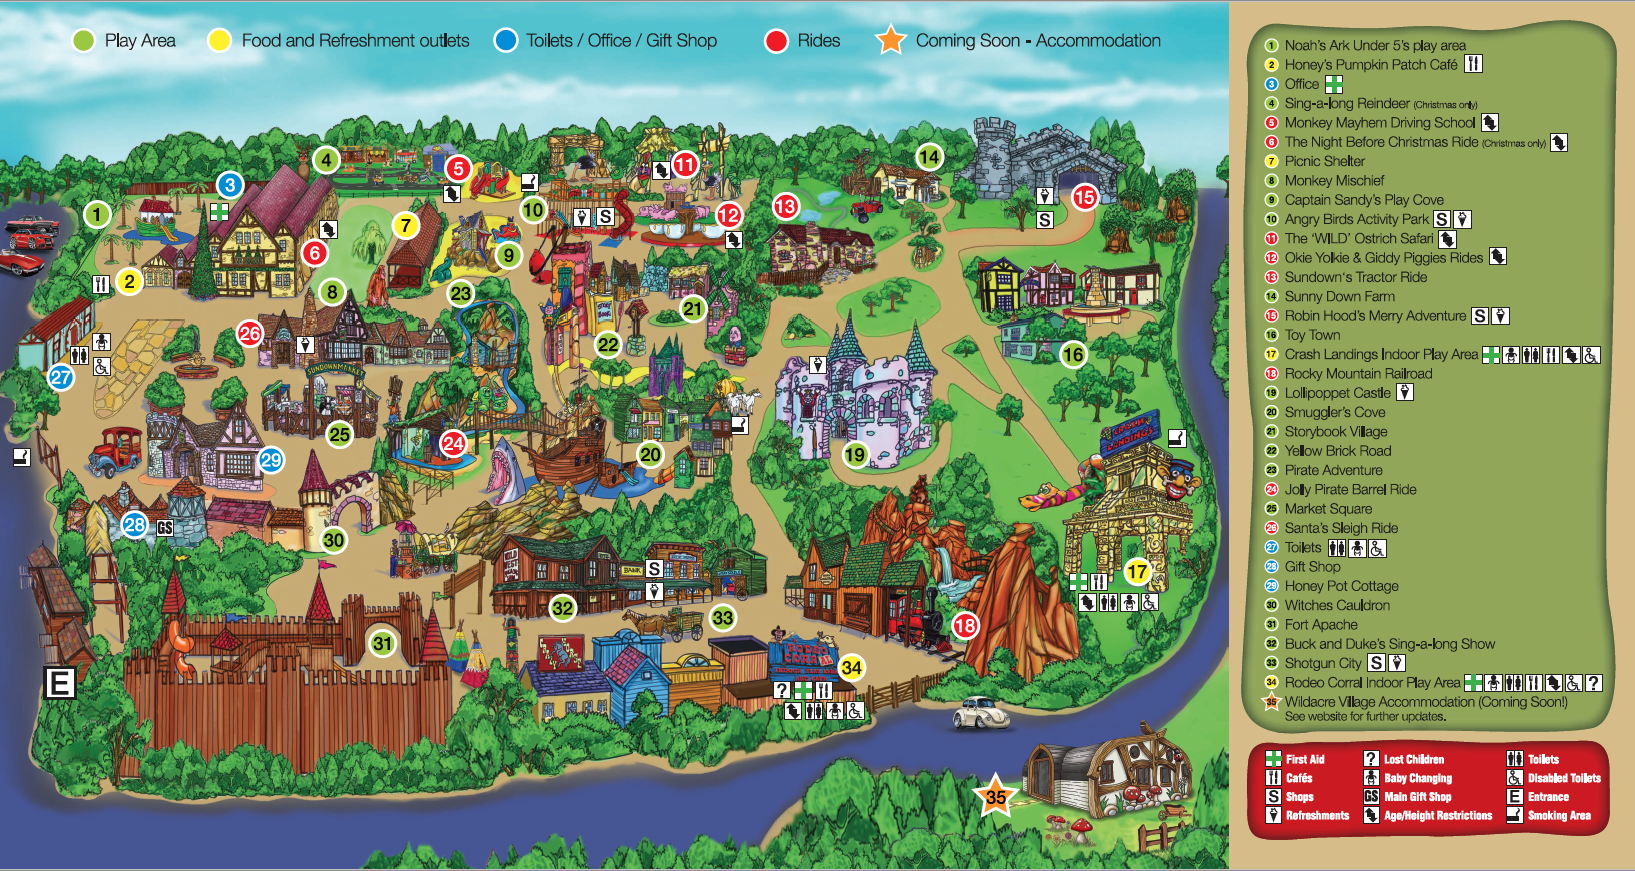 Sundown Adventure Land Park Map 2020